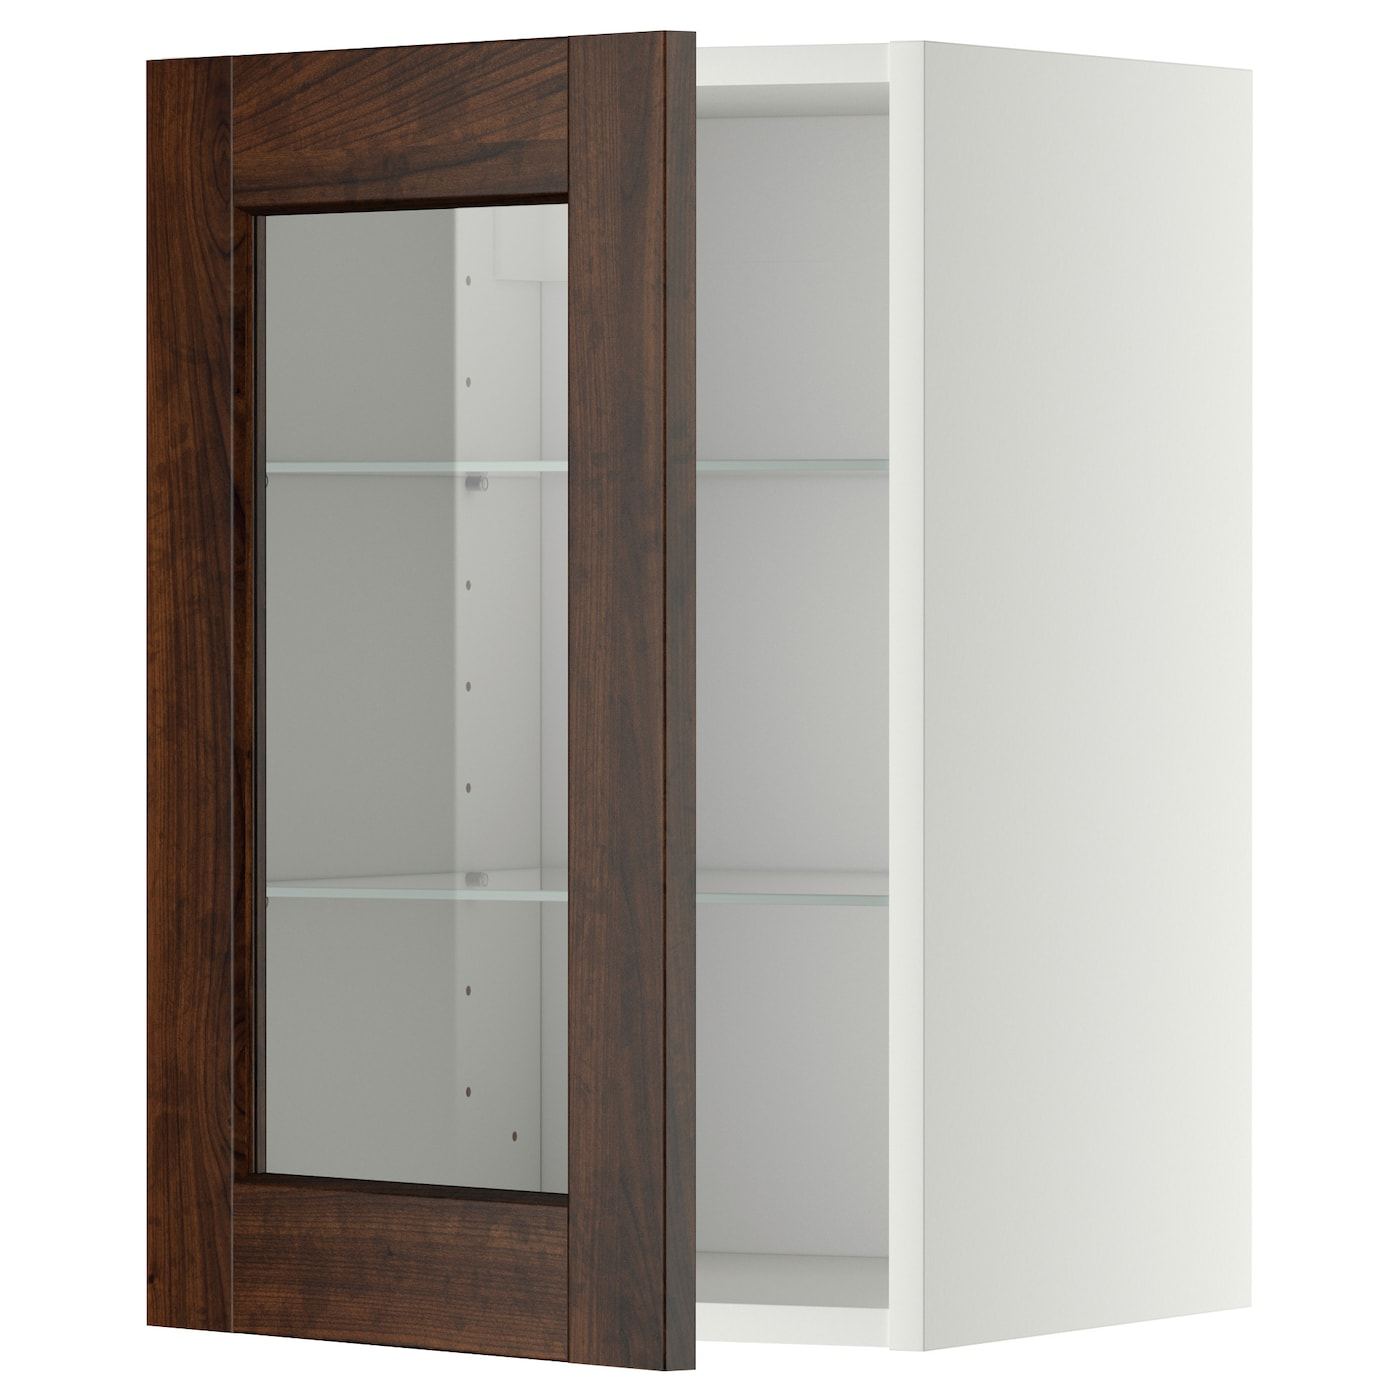 Metod wall cabinet w shelves glass door white edserum for Ikea glass door wall cabinet